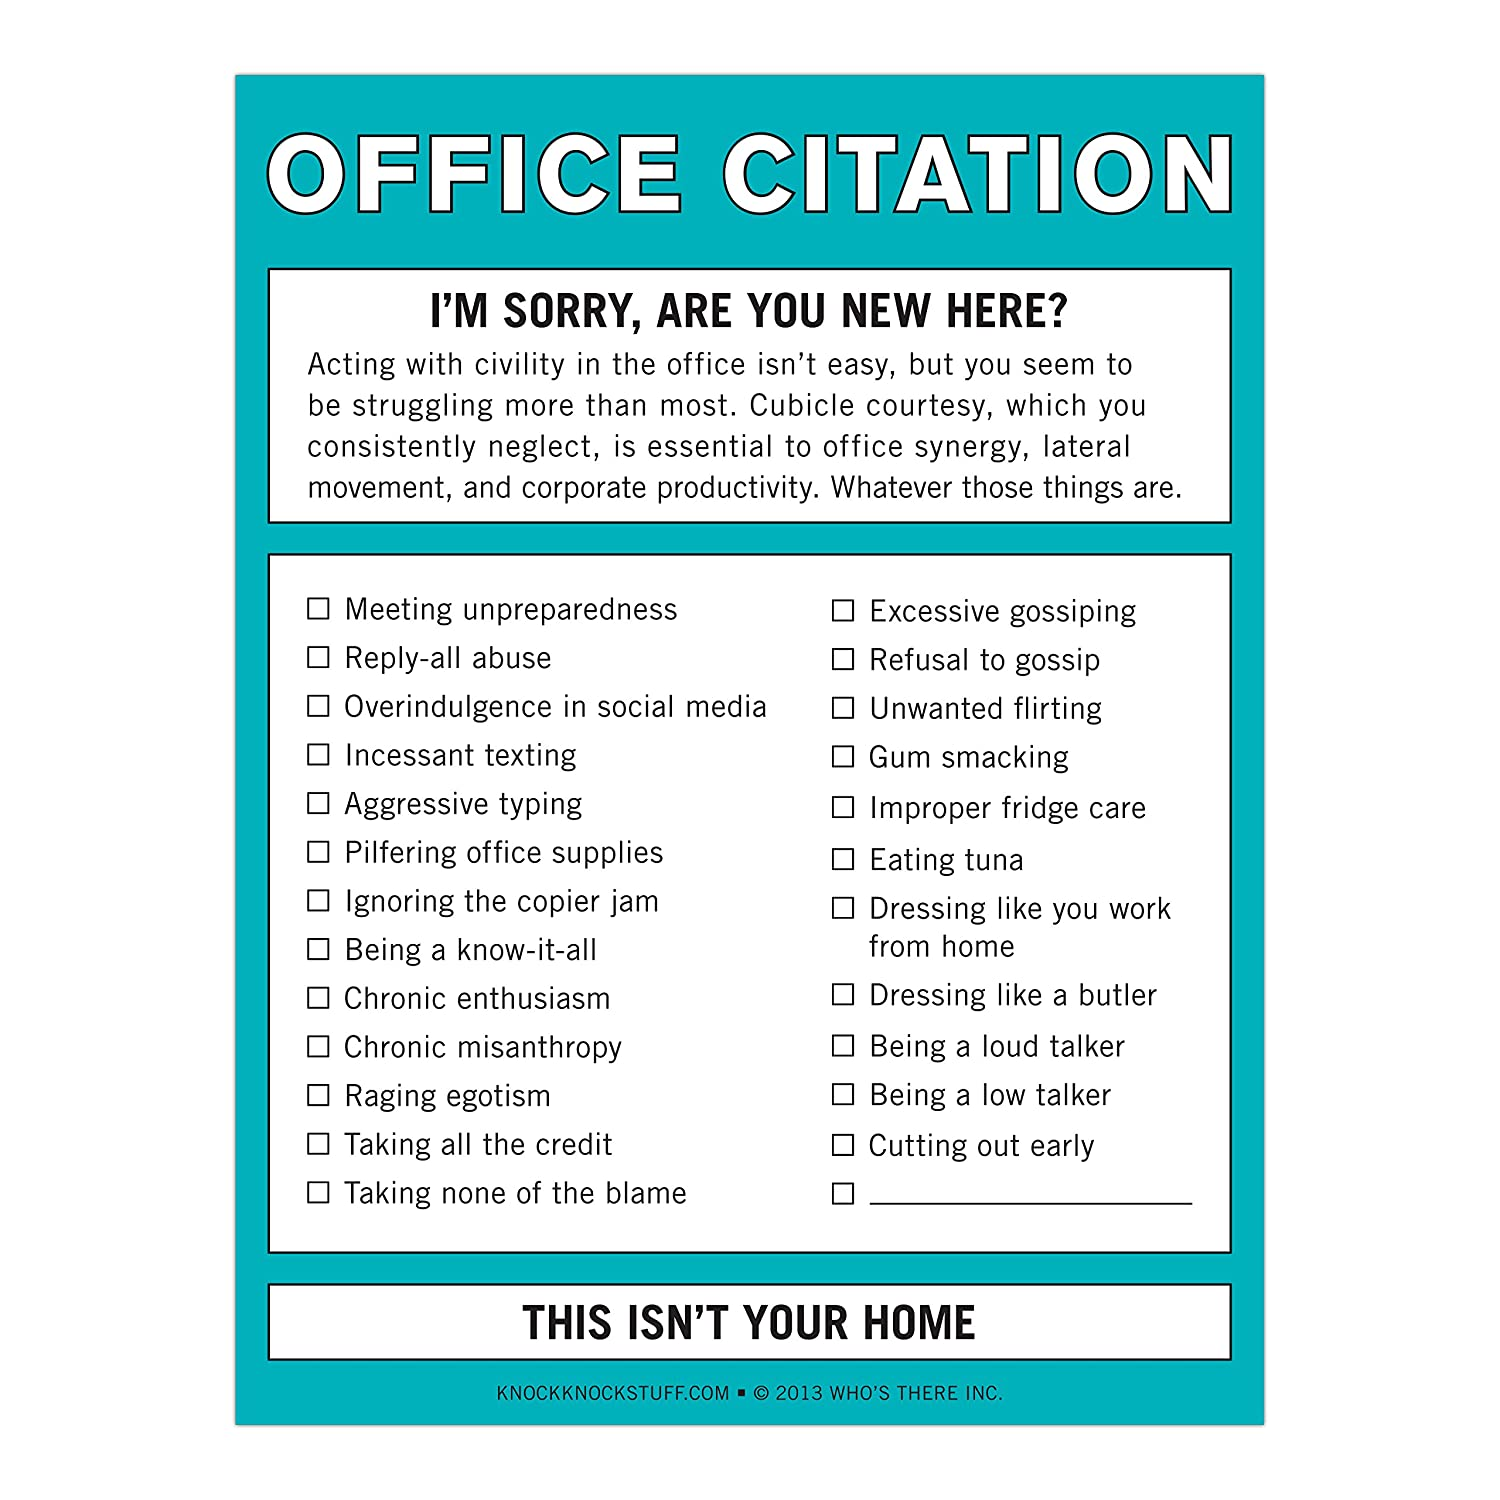 It s easy to find the office supplies copy paper furniture ink - Amazon Com Knock Knock Office Citation Nifty Note Knock Knock Office Products